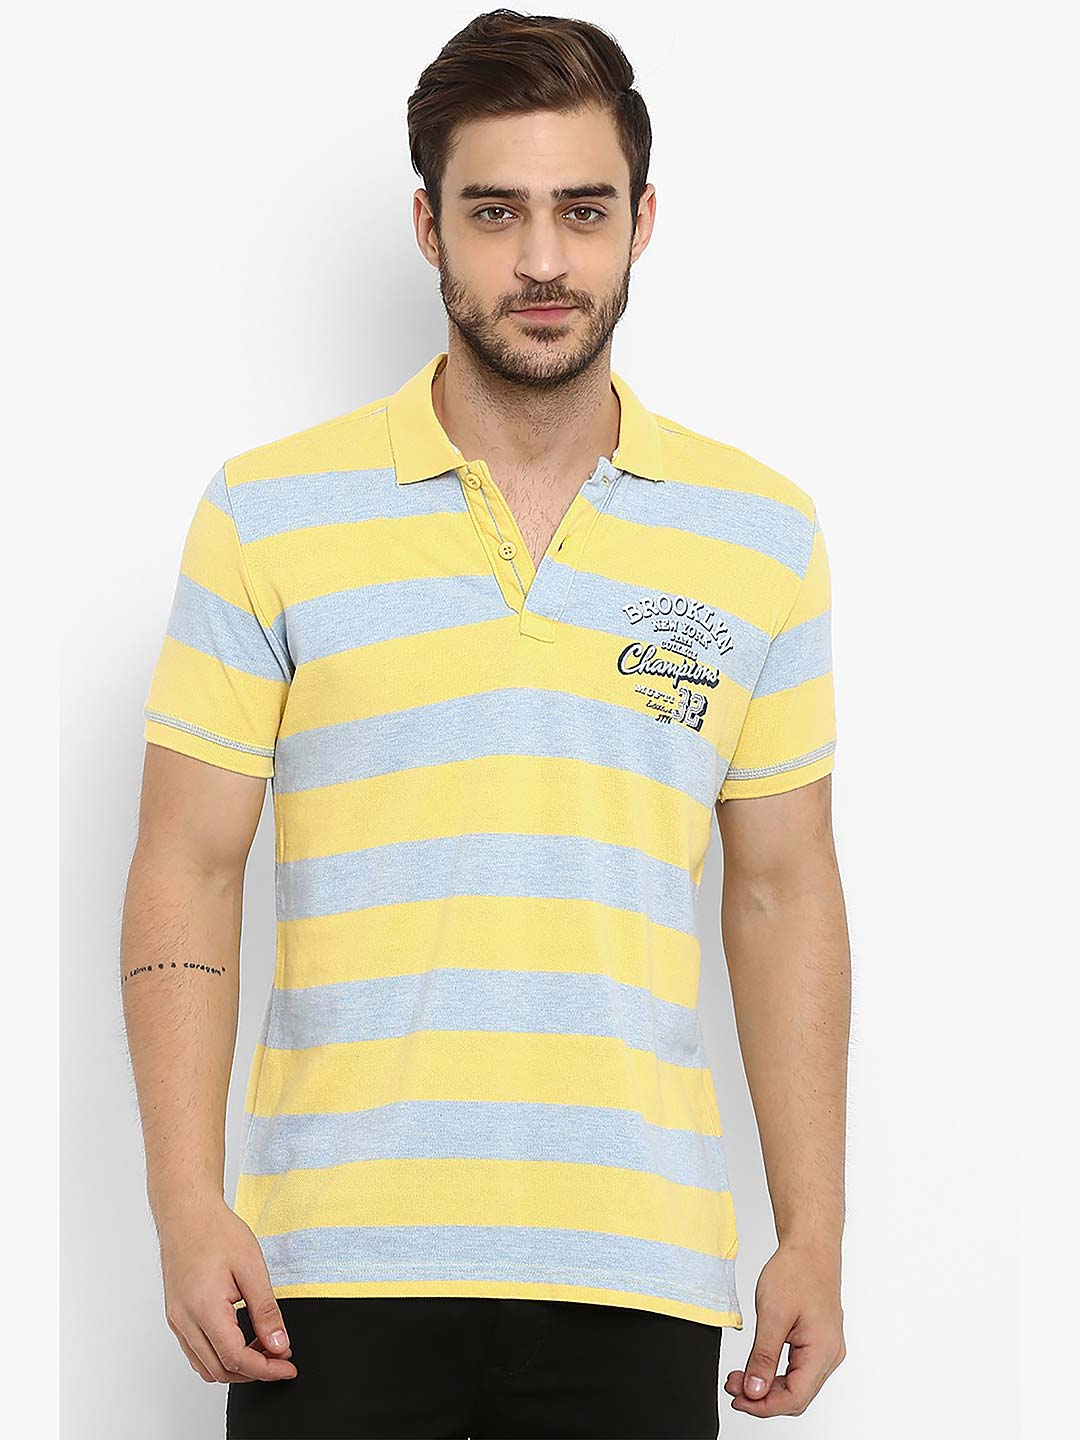 40ddfebc Mufti yellow and grey stripe polo t-shirt - G3-MTS8673 | G3fashion.com